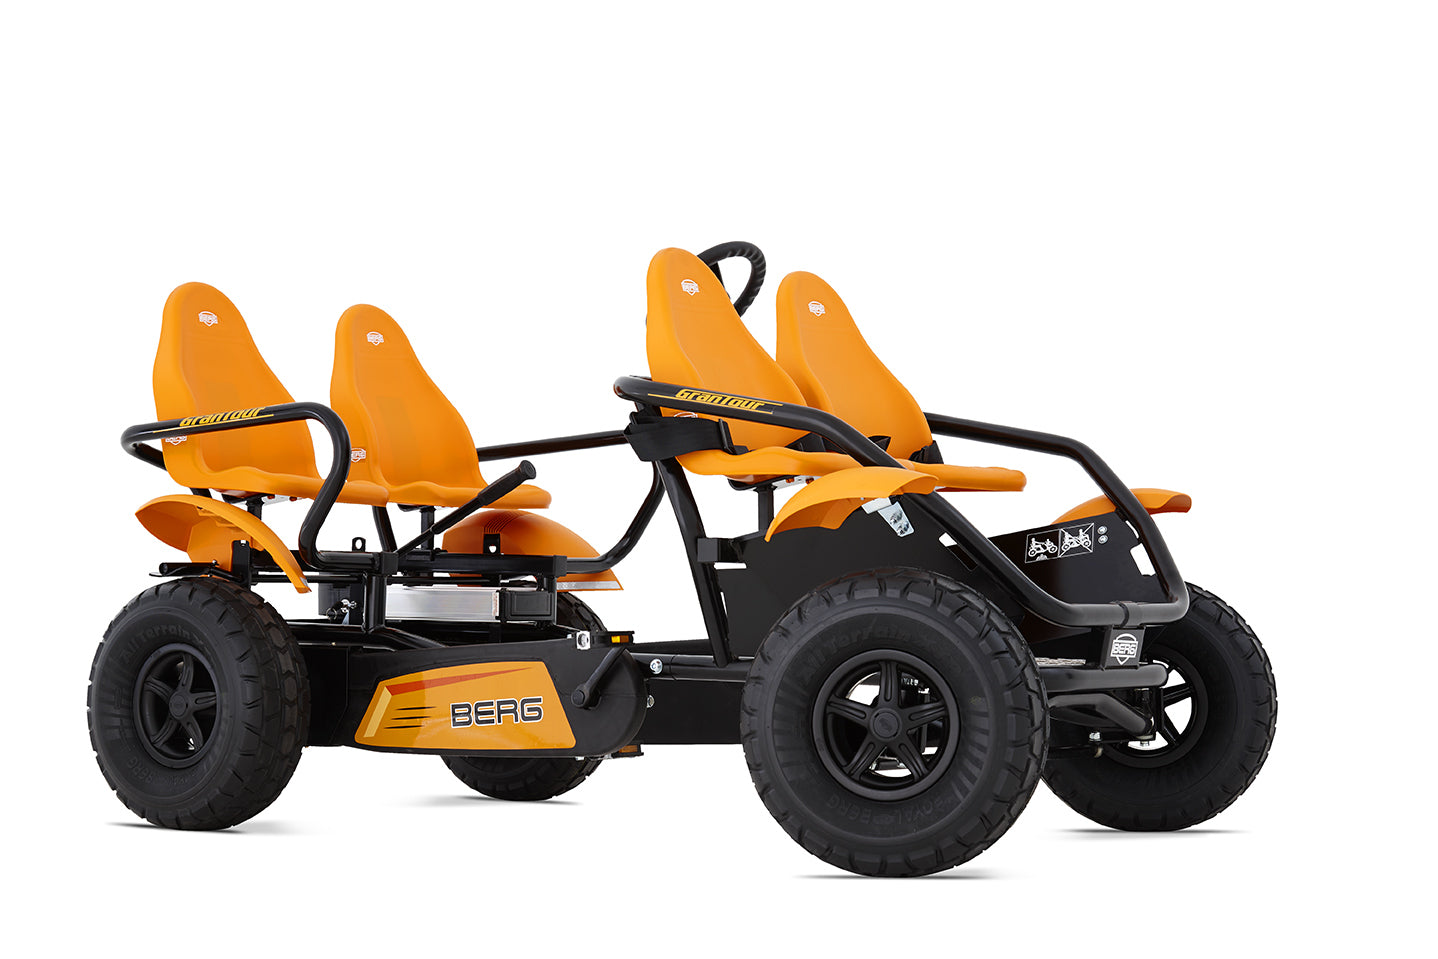 berg usa e grantour offroad 4 seater electric go kart upzy. Black Bedroom Furniture Sets. Home Design Ideas